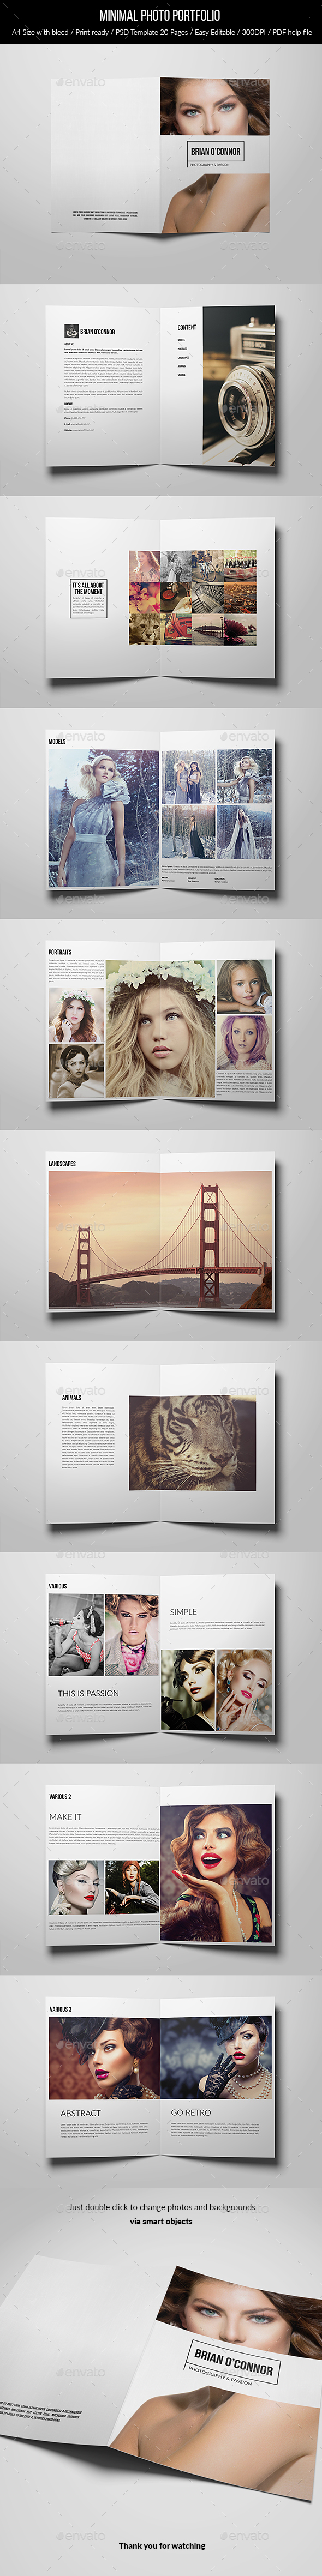 Minimal Photo Portfolio - 20 Pages - Portfolio Brochures